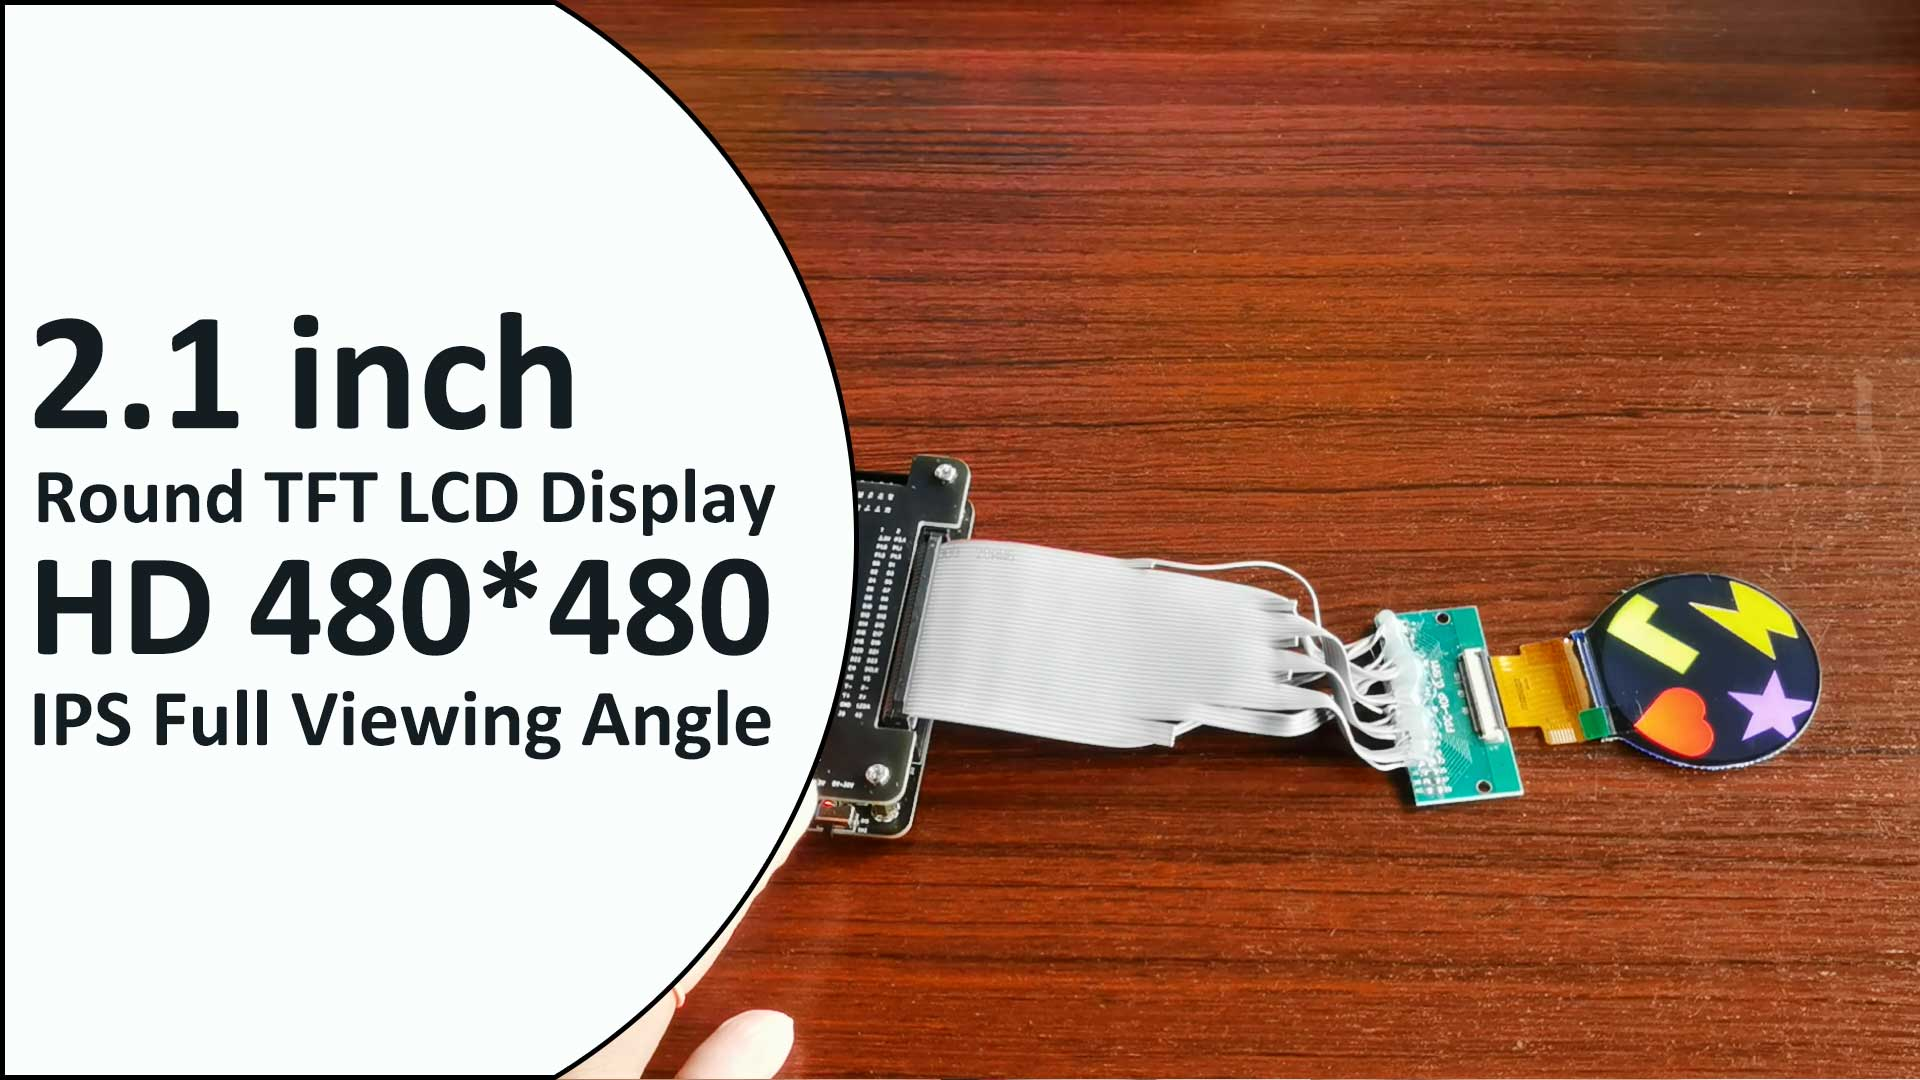 Circular LCD Factory 2.1 inch 480*480 HD IPS Round TFT LCD Display Module 40 Pin SPI RGB ST7701S